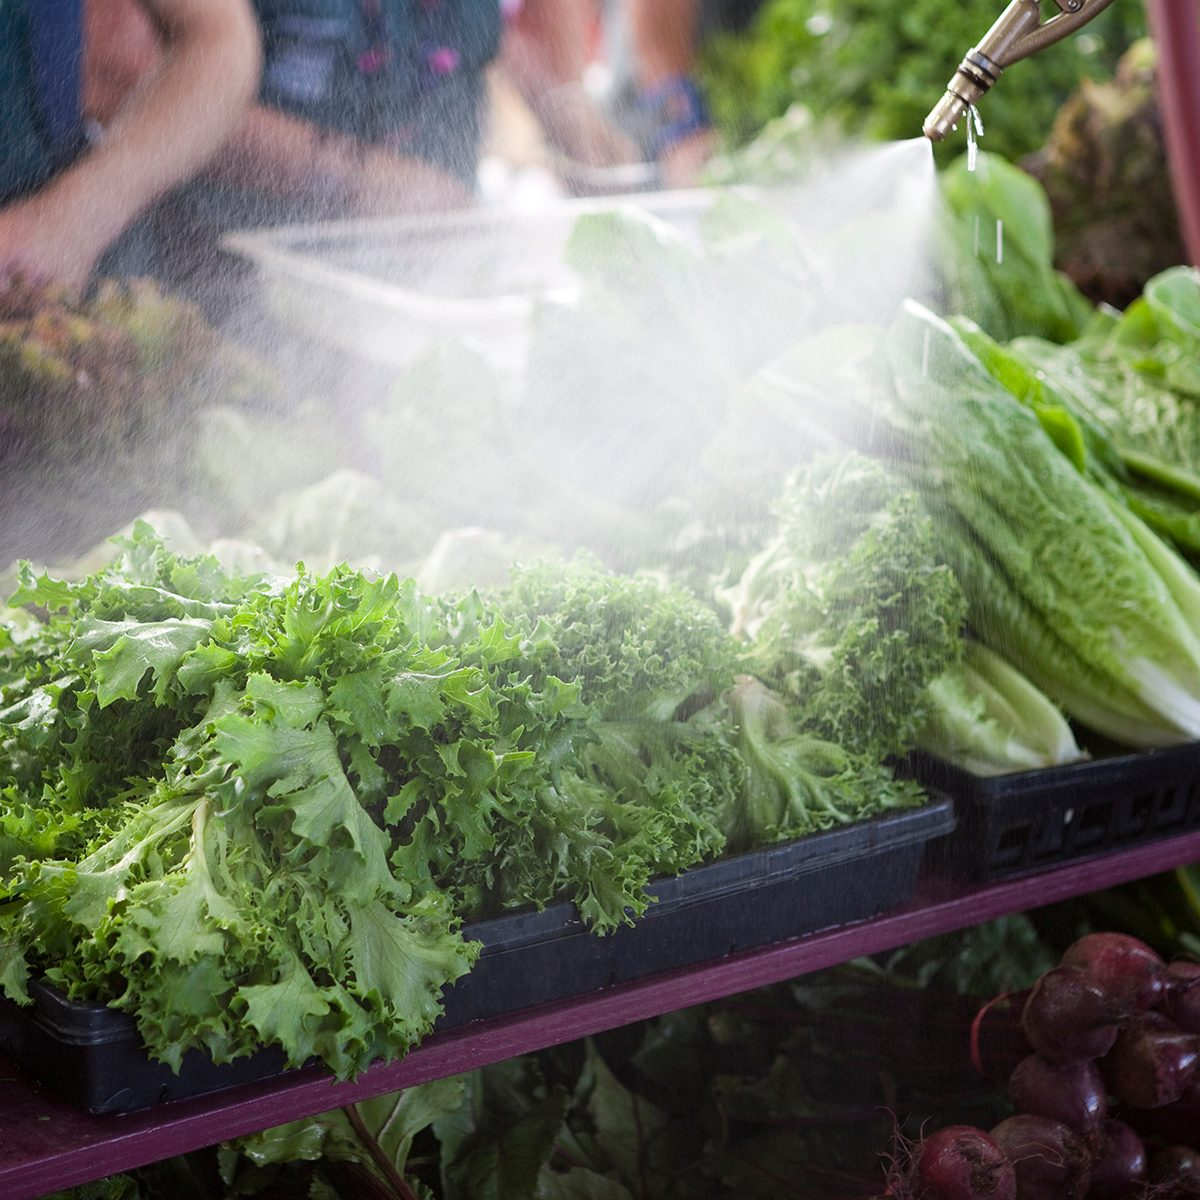 A farmer washes fresh lettuce at a farmers market stall. Abundant fresh produce piled high at a farmers market. Check out my